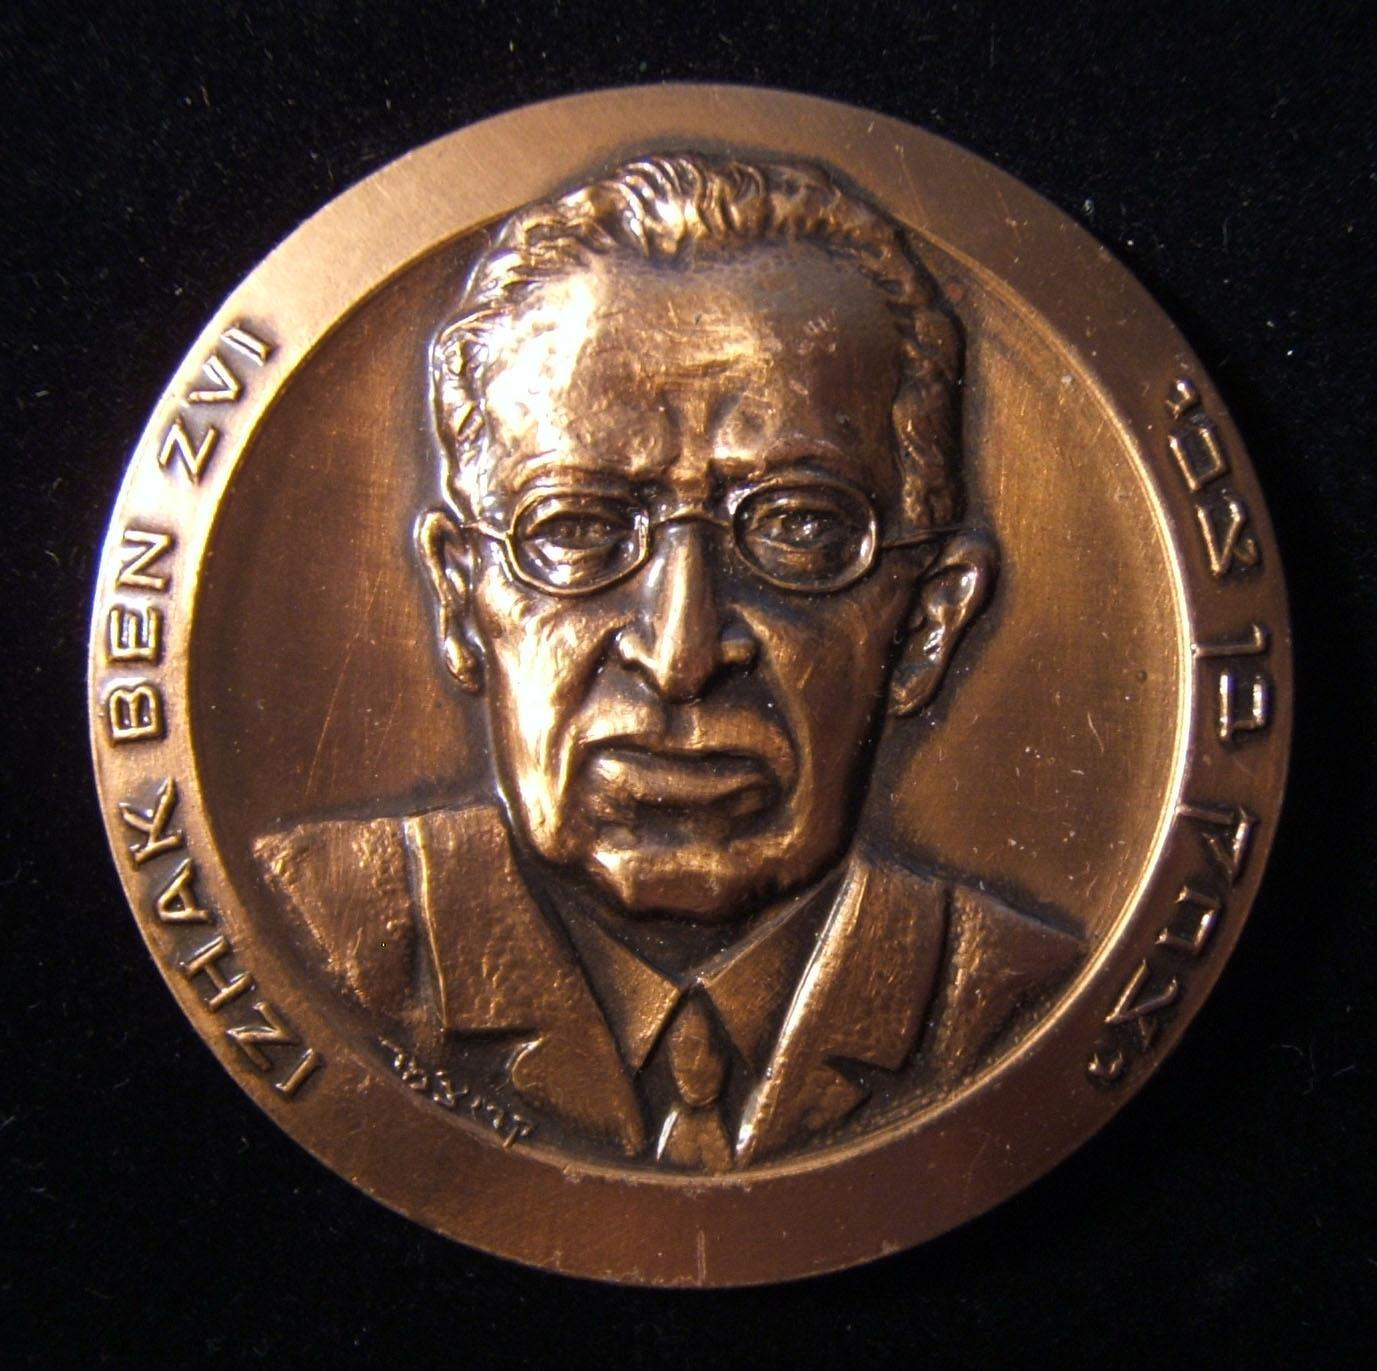 Israel: [President] Yitzhak Ben-Zvi bas-relief bronze portrait medal by Kretchmer, circa. 1963; size: 4.55cm; weight: 51.15g. Obverse bears Ben-Zvi's pose with name in English and